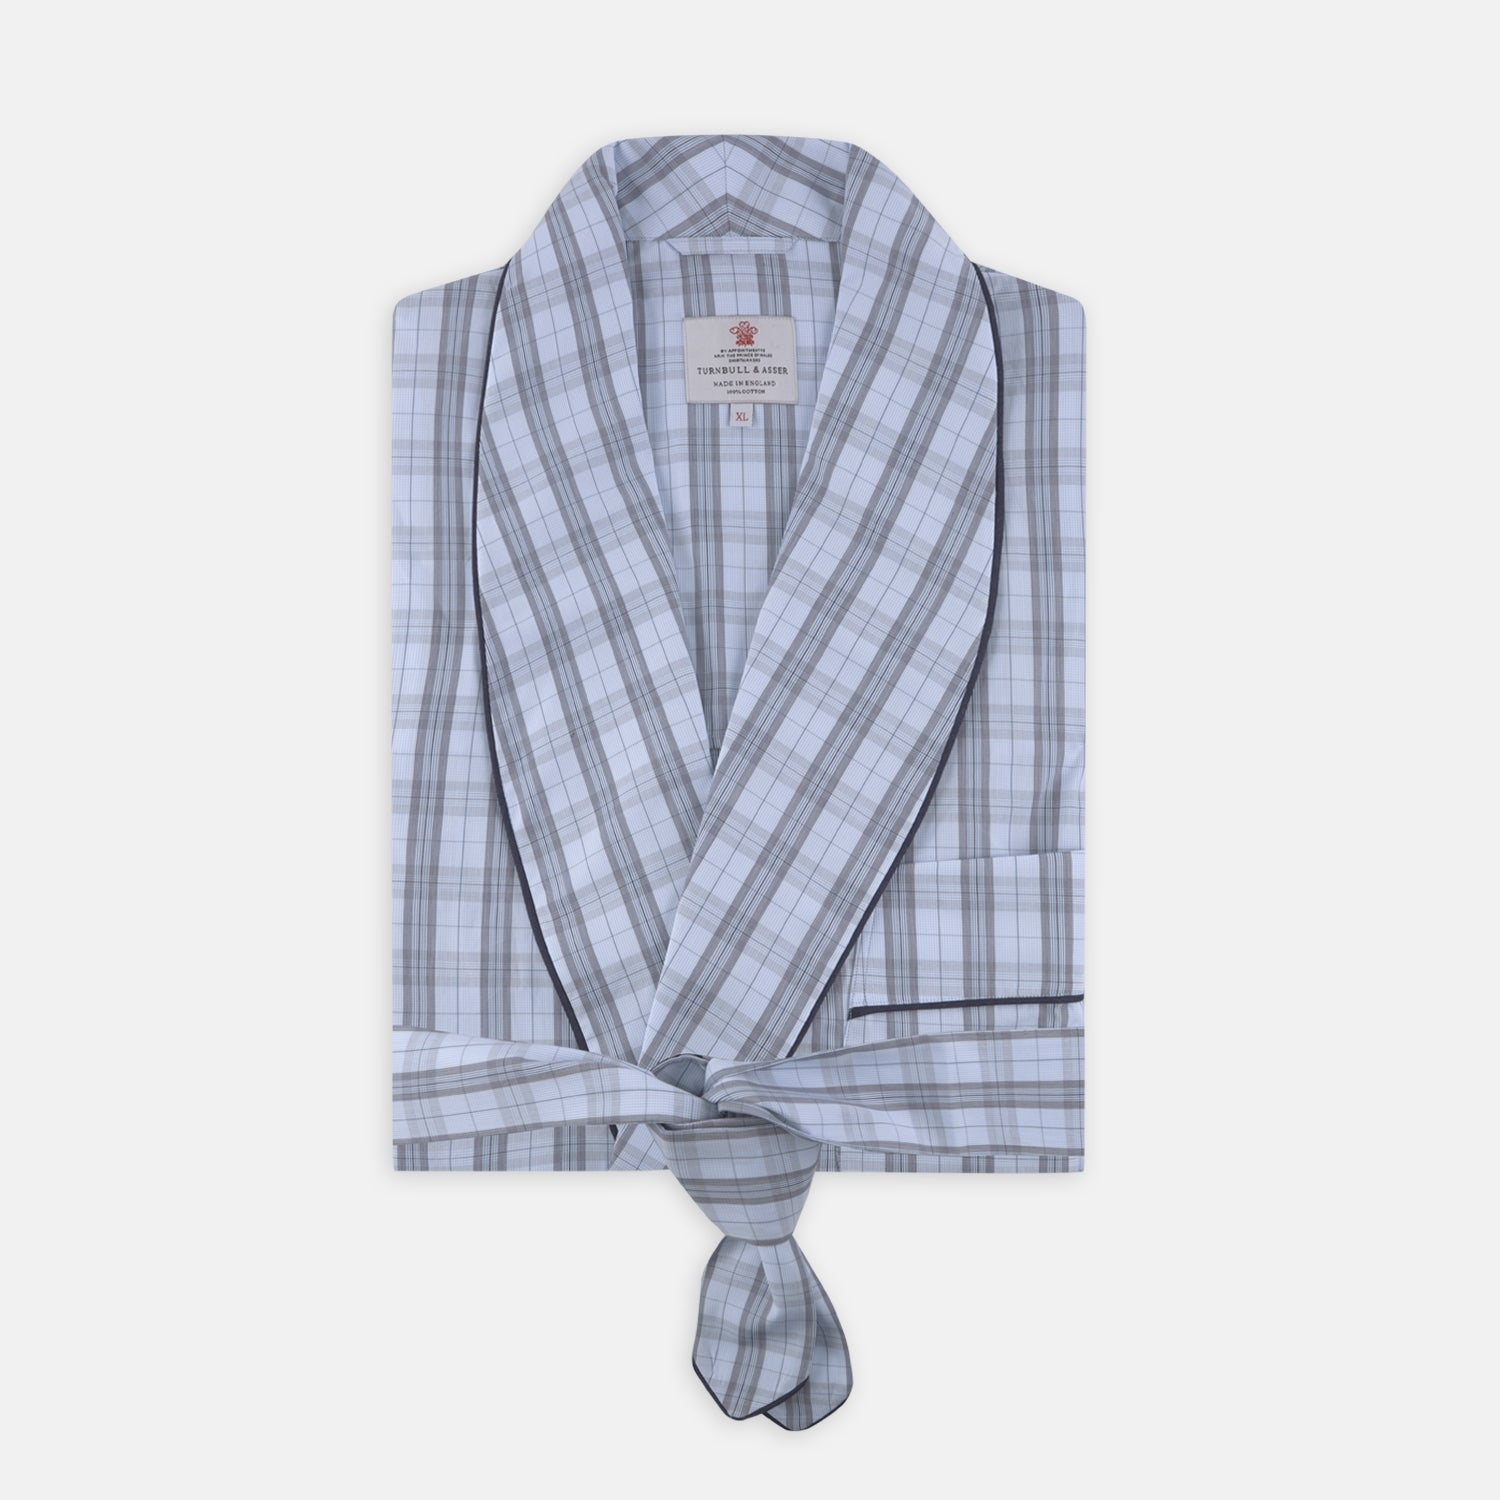 Grey, Turquoise and Sky Blue Mixed Check Cotton Gown - XL from Turnbull & Asser